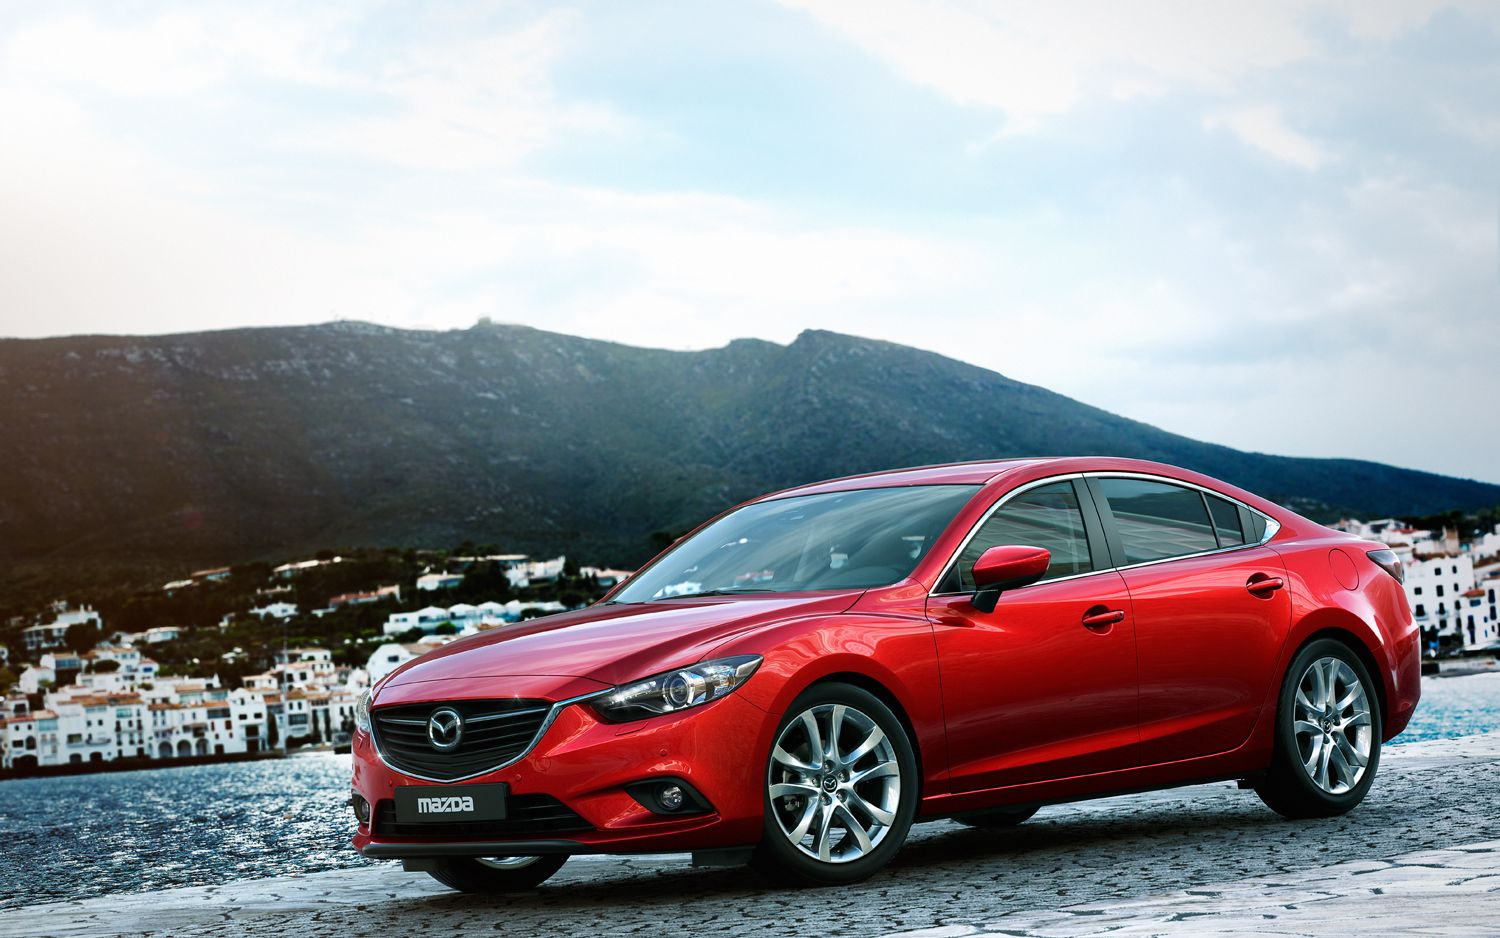 2014 Mazda6 Front Left Side View 211